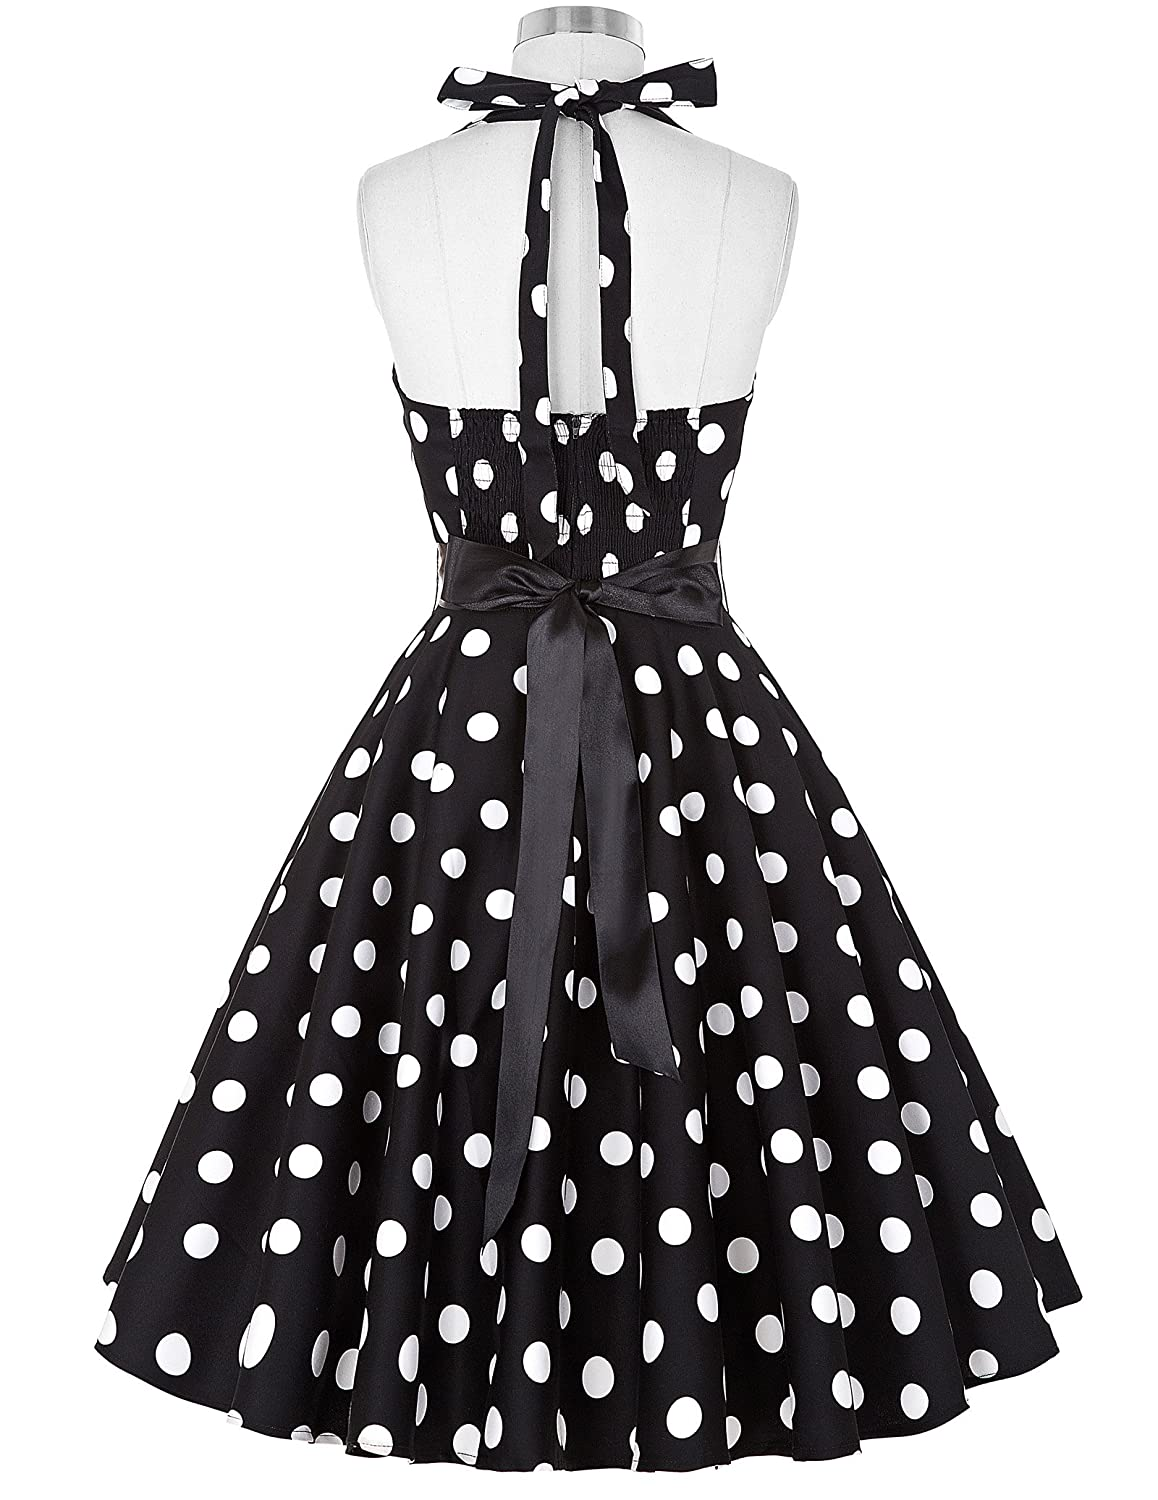 Halter Neck Dress Women Vintage Round Neck Sleeveless Polka Dots Dress M YF4599-1: Amazon.co.uk: Clothing